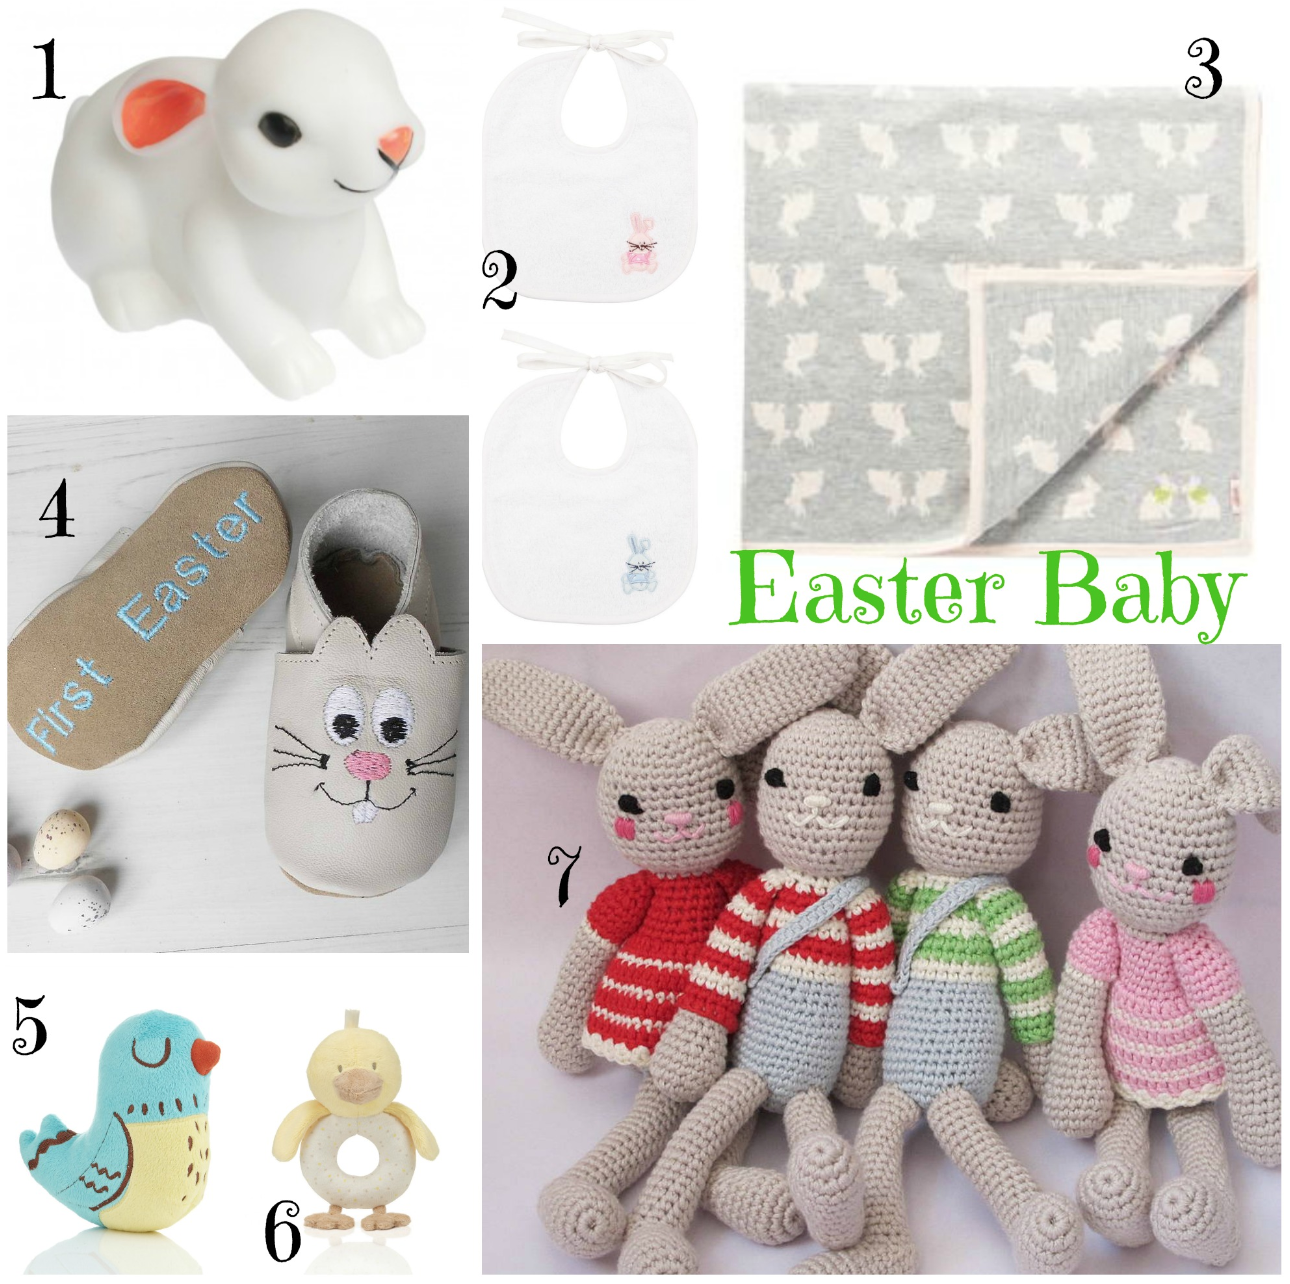 Cracking easter gifts for a springtime baby v i buys mamas vib cracking easter gifts for a springtime baby v i buys negle